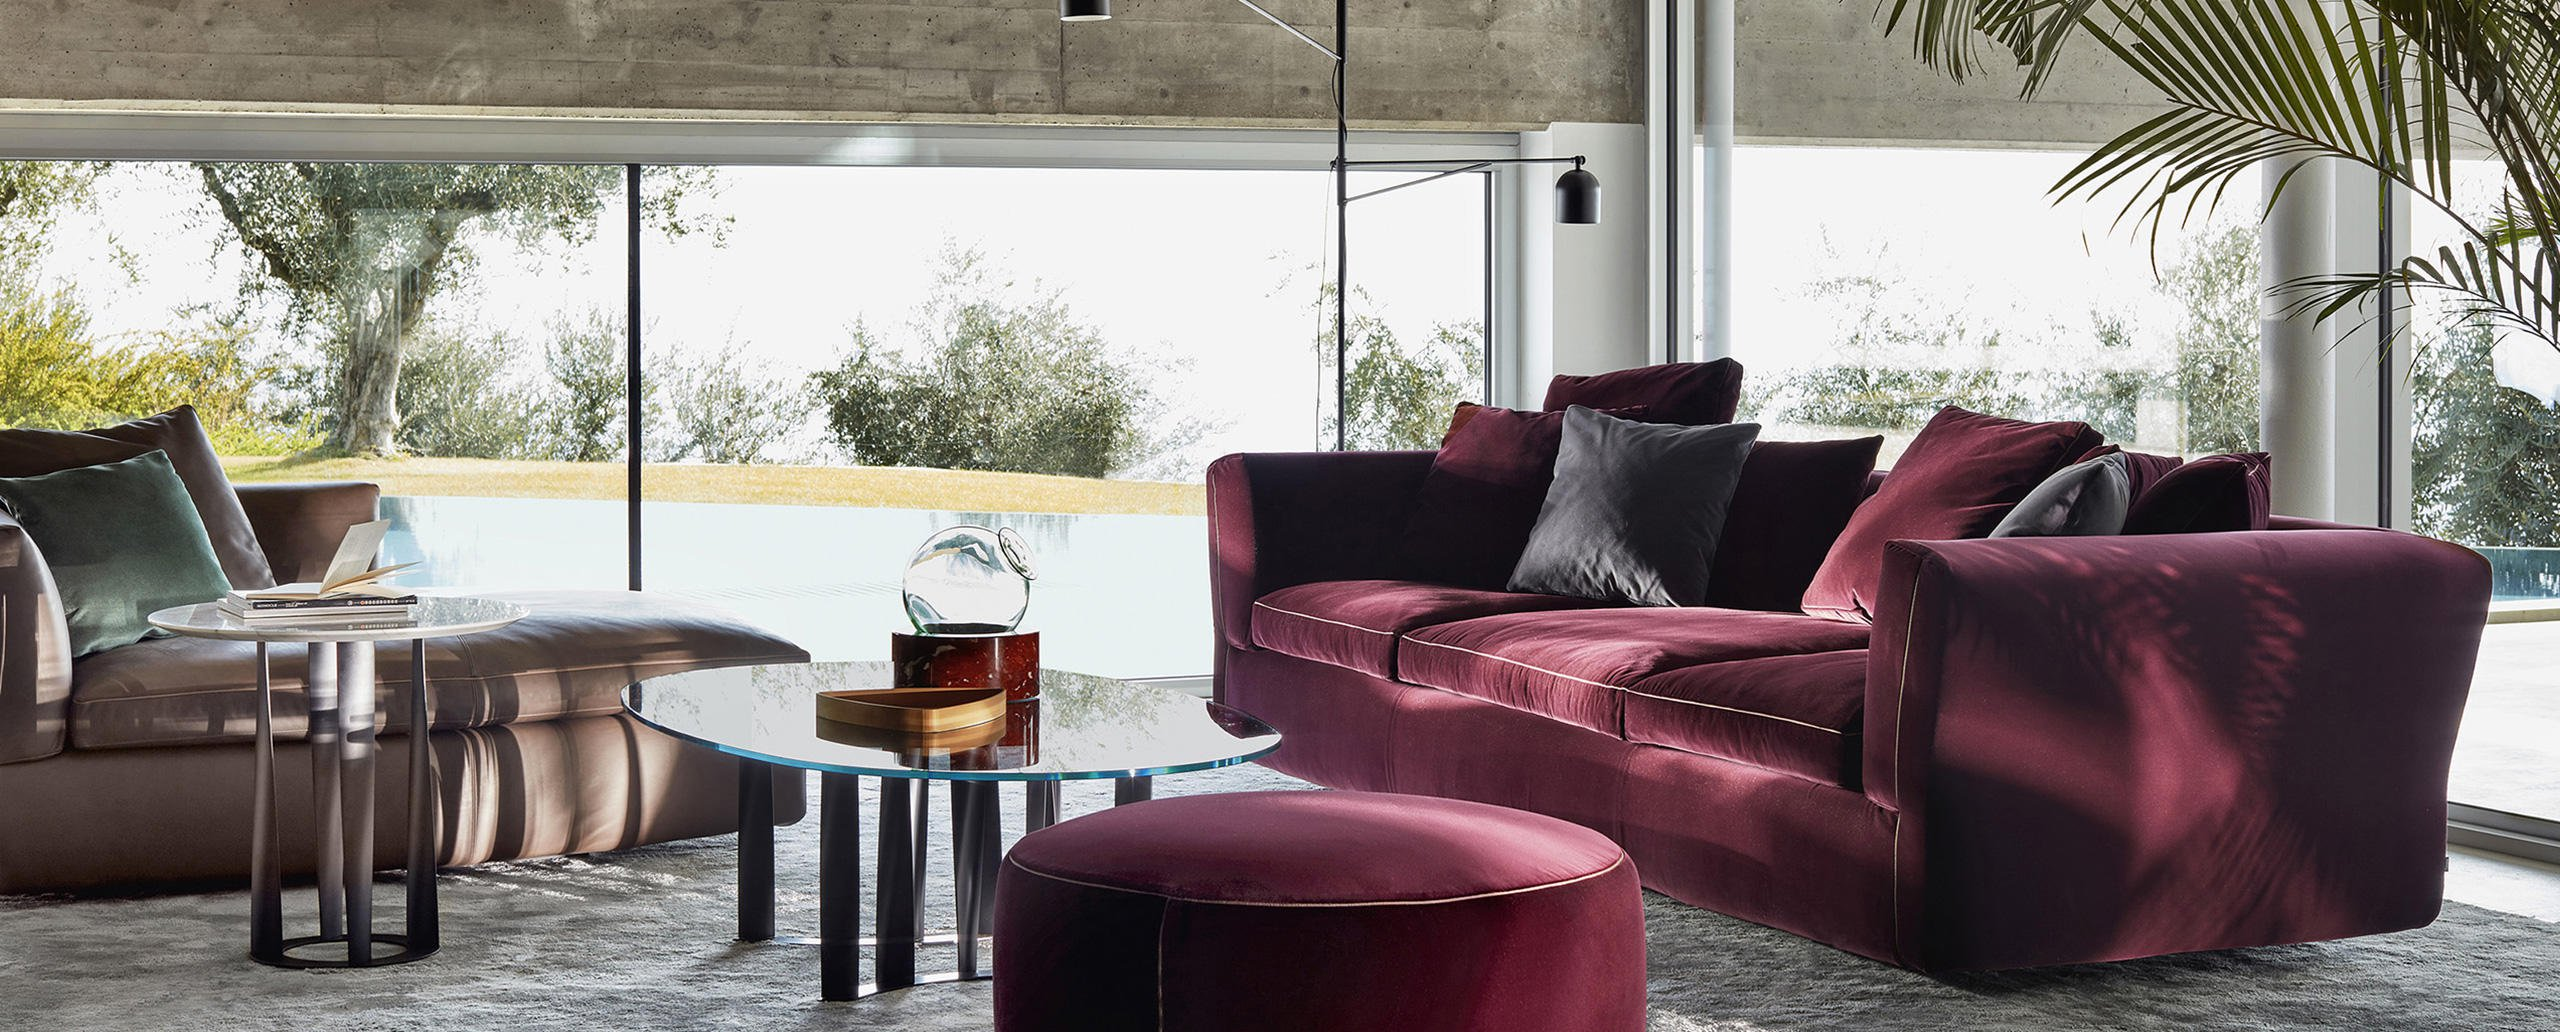 8_cassina_dress-up_sofa_system_rodolfo_dordoni_photodepasqualemaffini_0